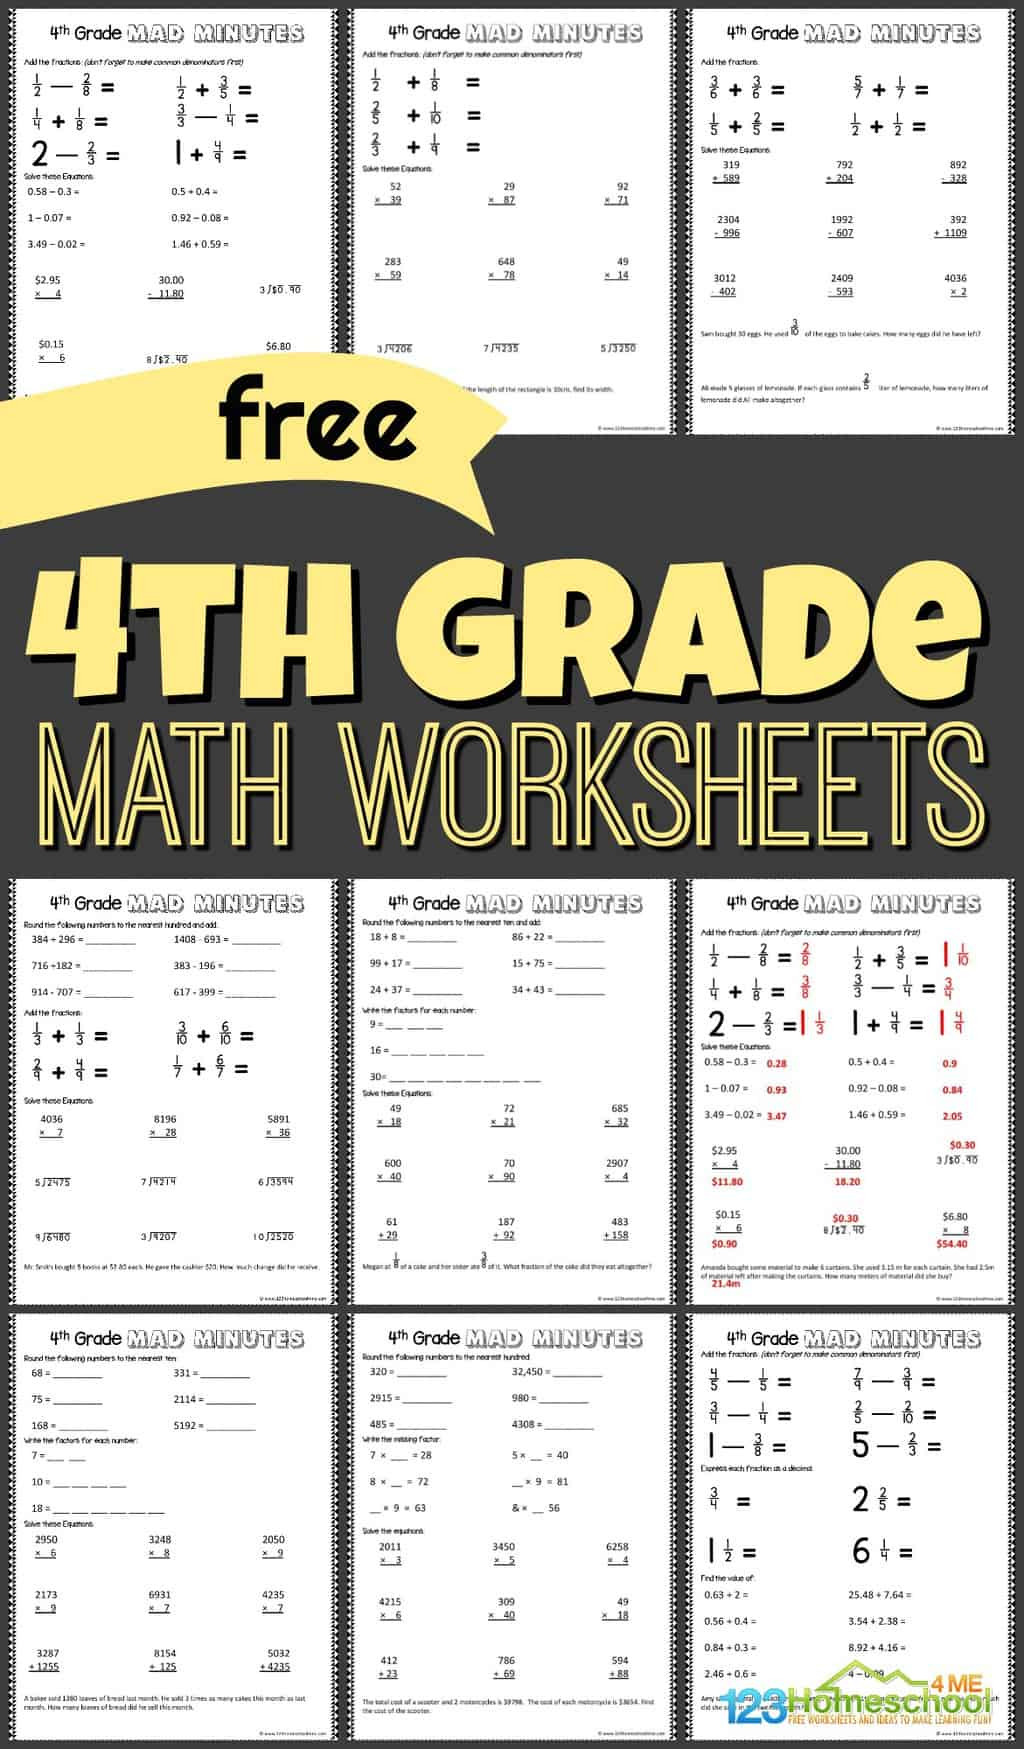 Saxon Math Worksheets 4th Grade Free 4th Grade Math Worksheets for Fourth Graders to